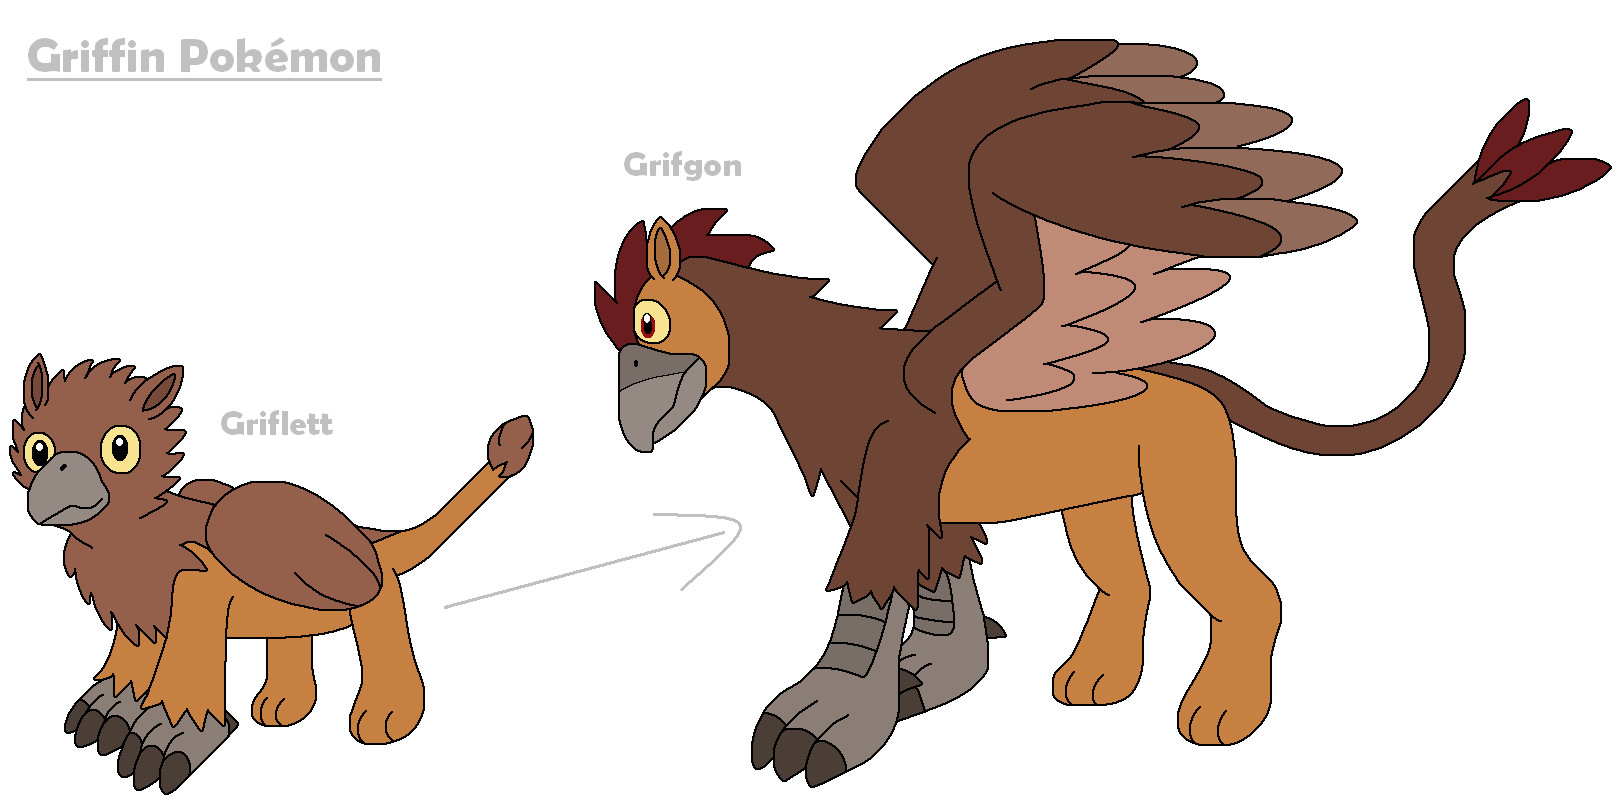 Griffin pokemon by mcsaurus on deviantart for The griffin